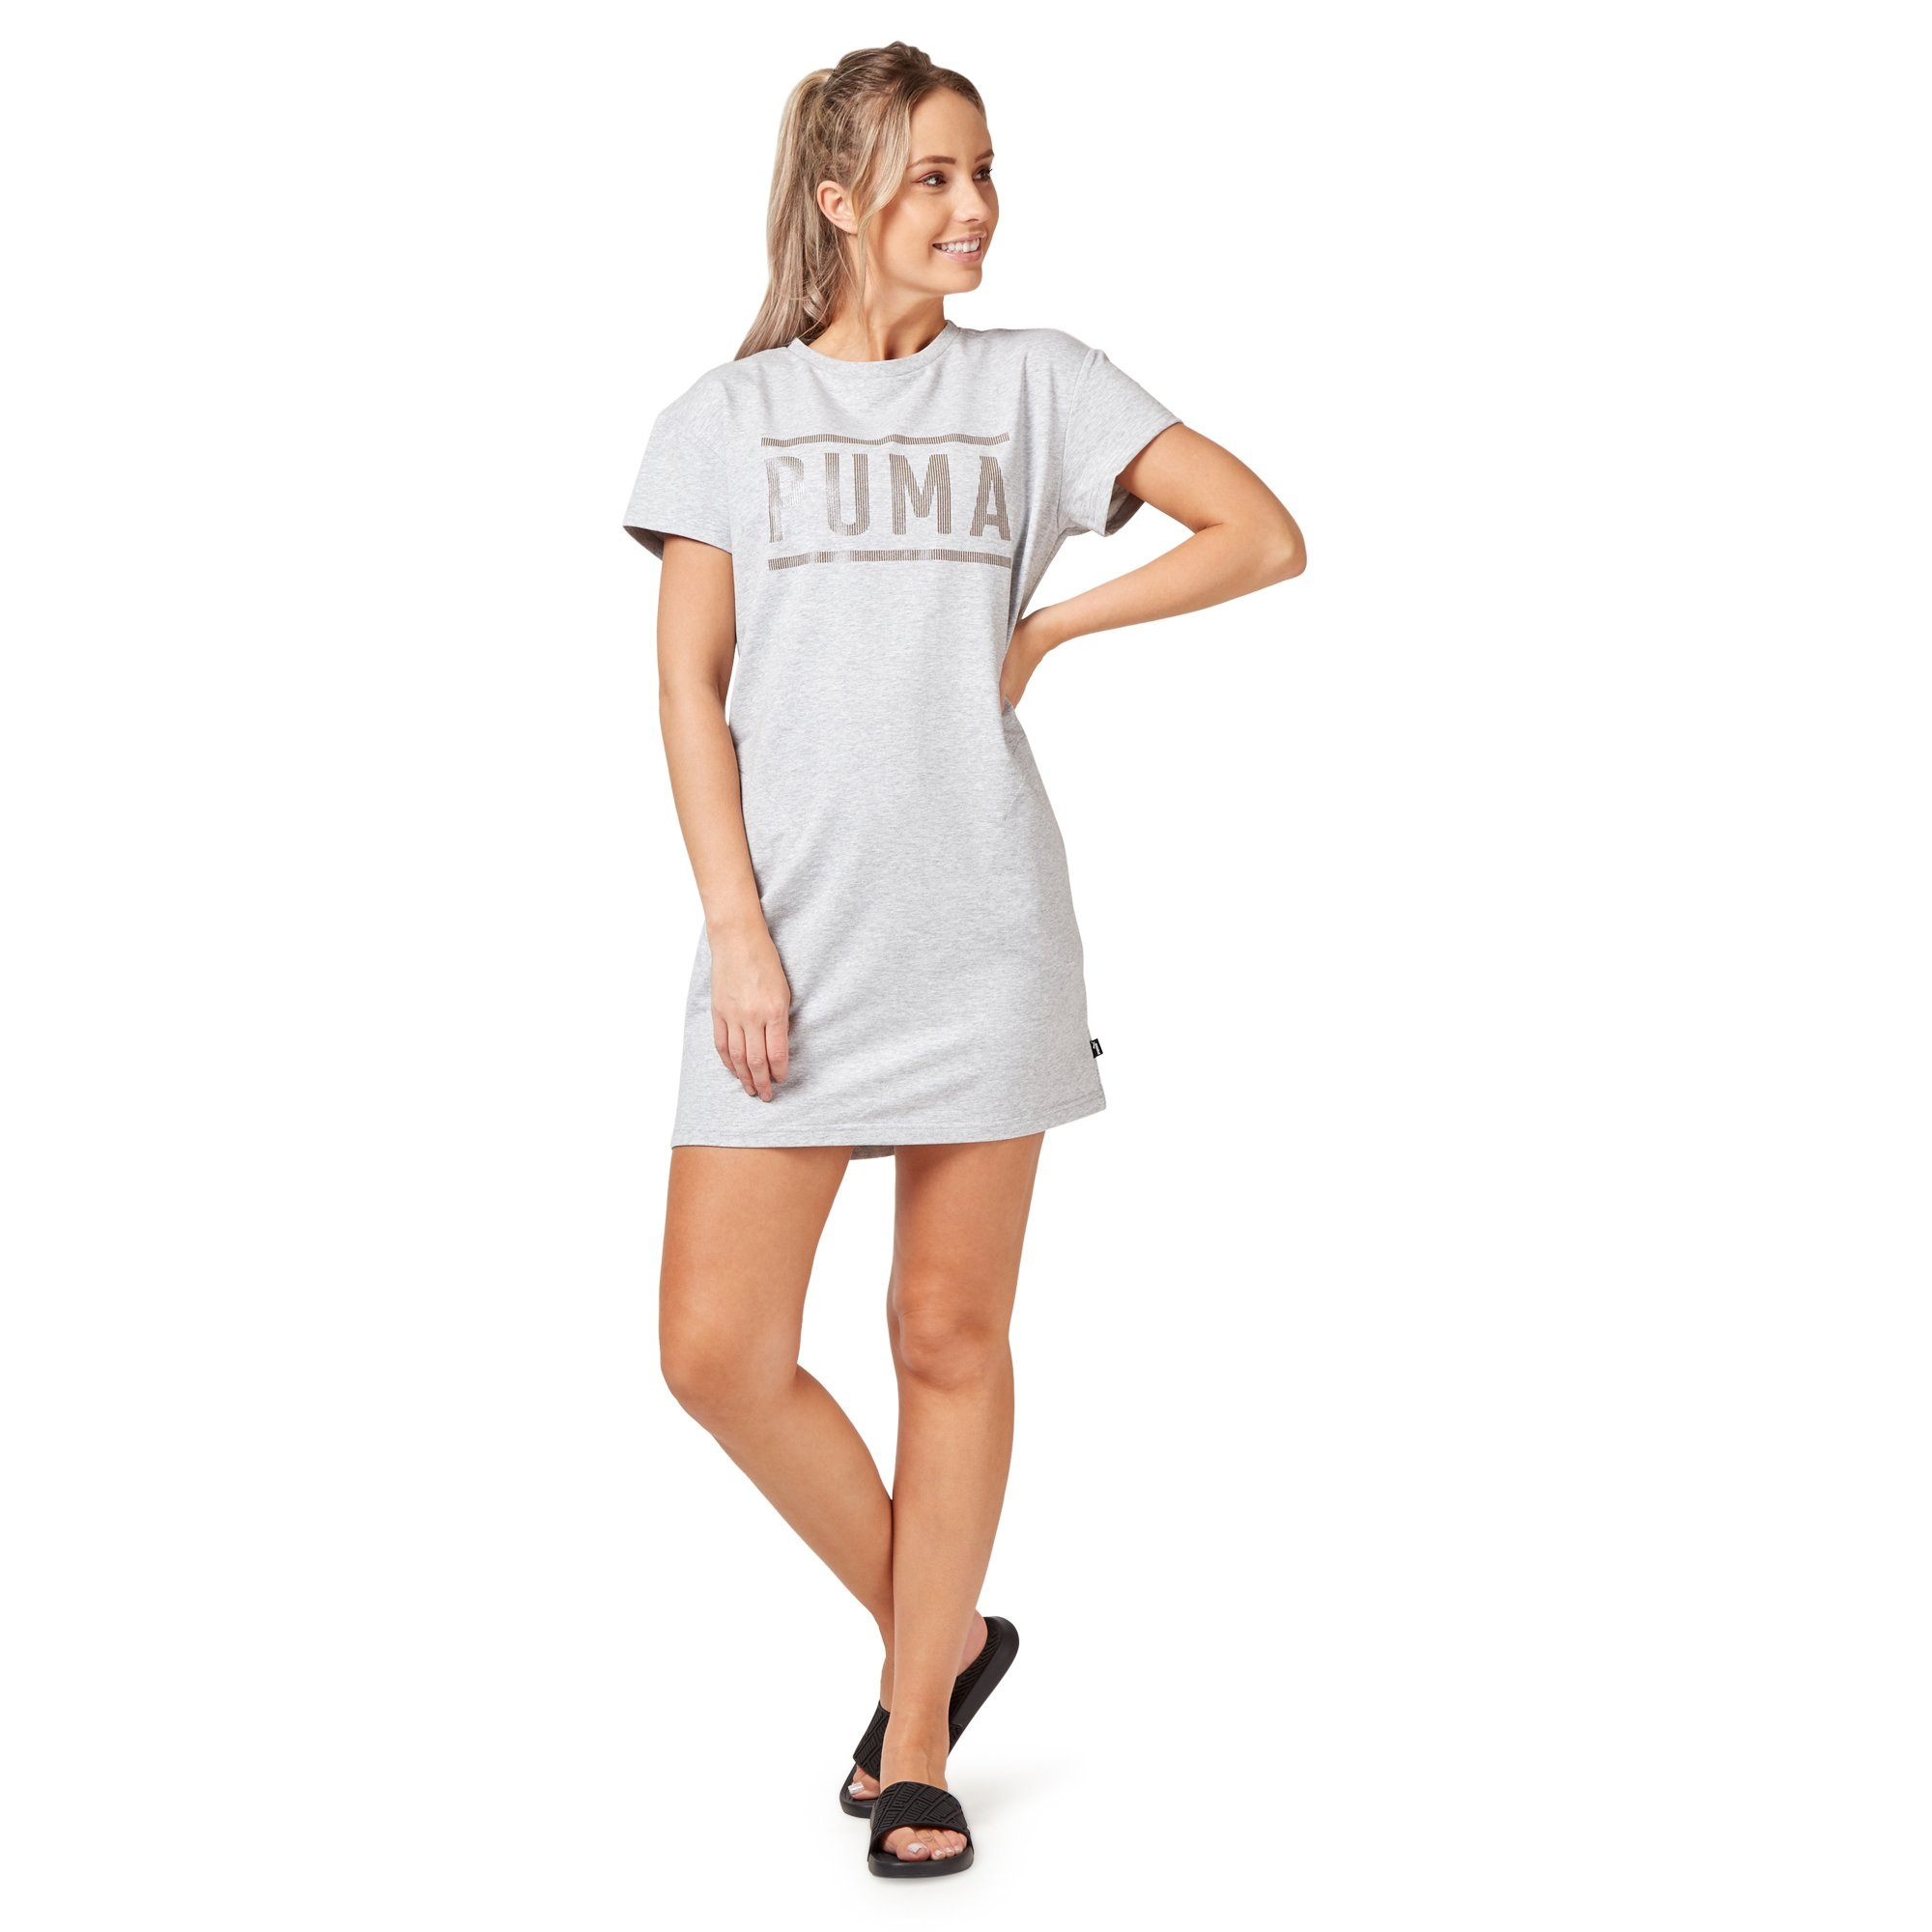 Puma Women's Athletic Dress - Light Grey Apparel Puma